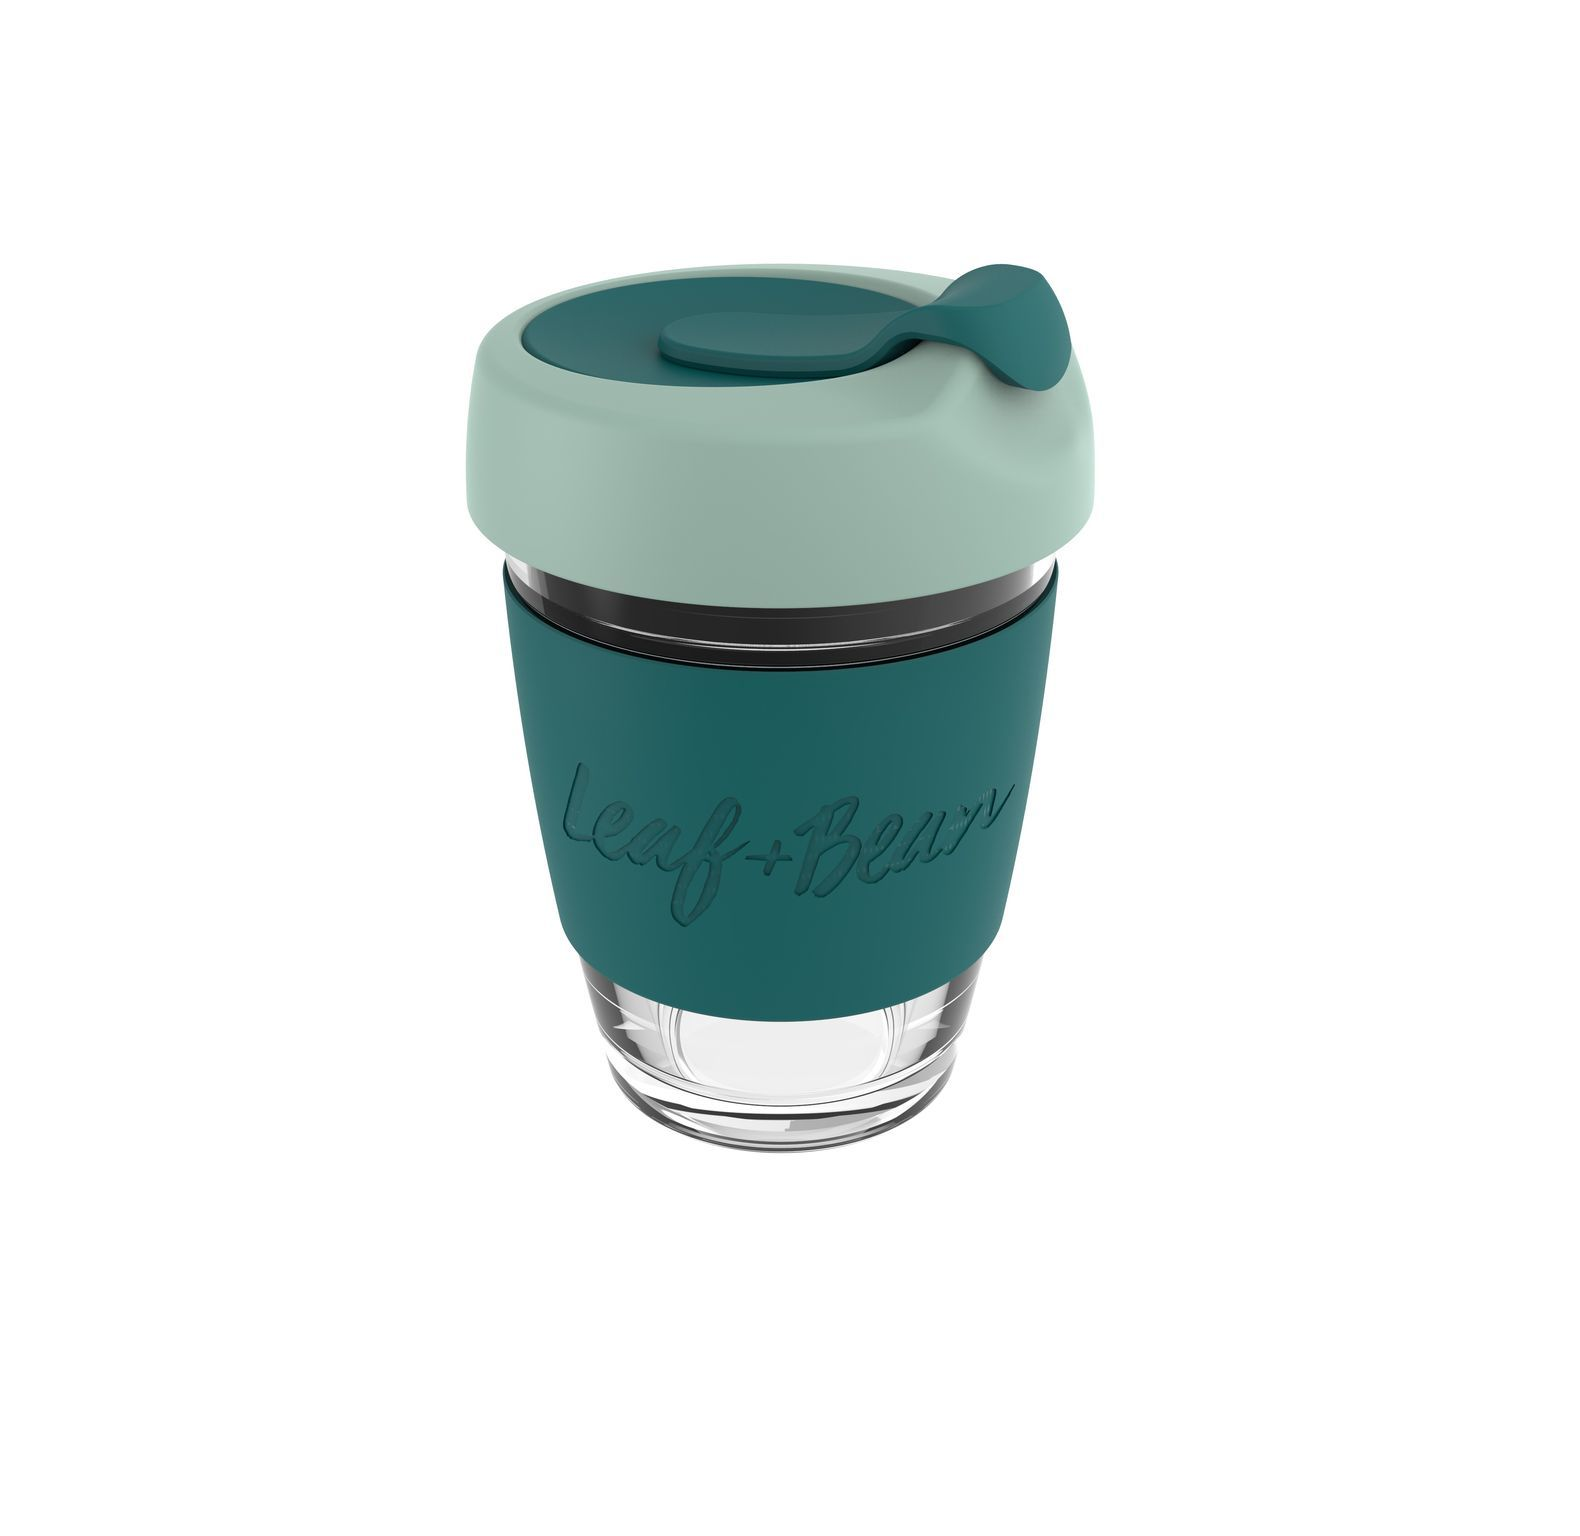 Leaf & Bean: Sorrento Glass Travel Cup - Moss/Forest image